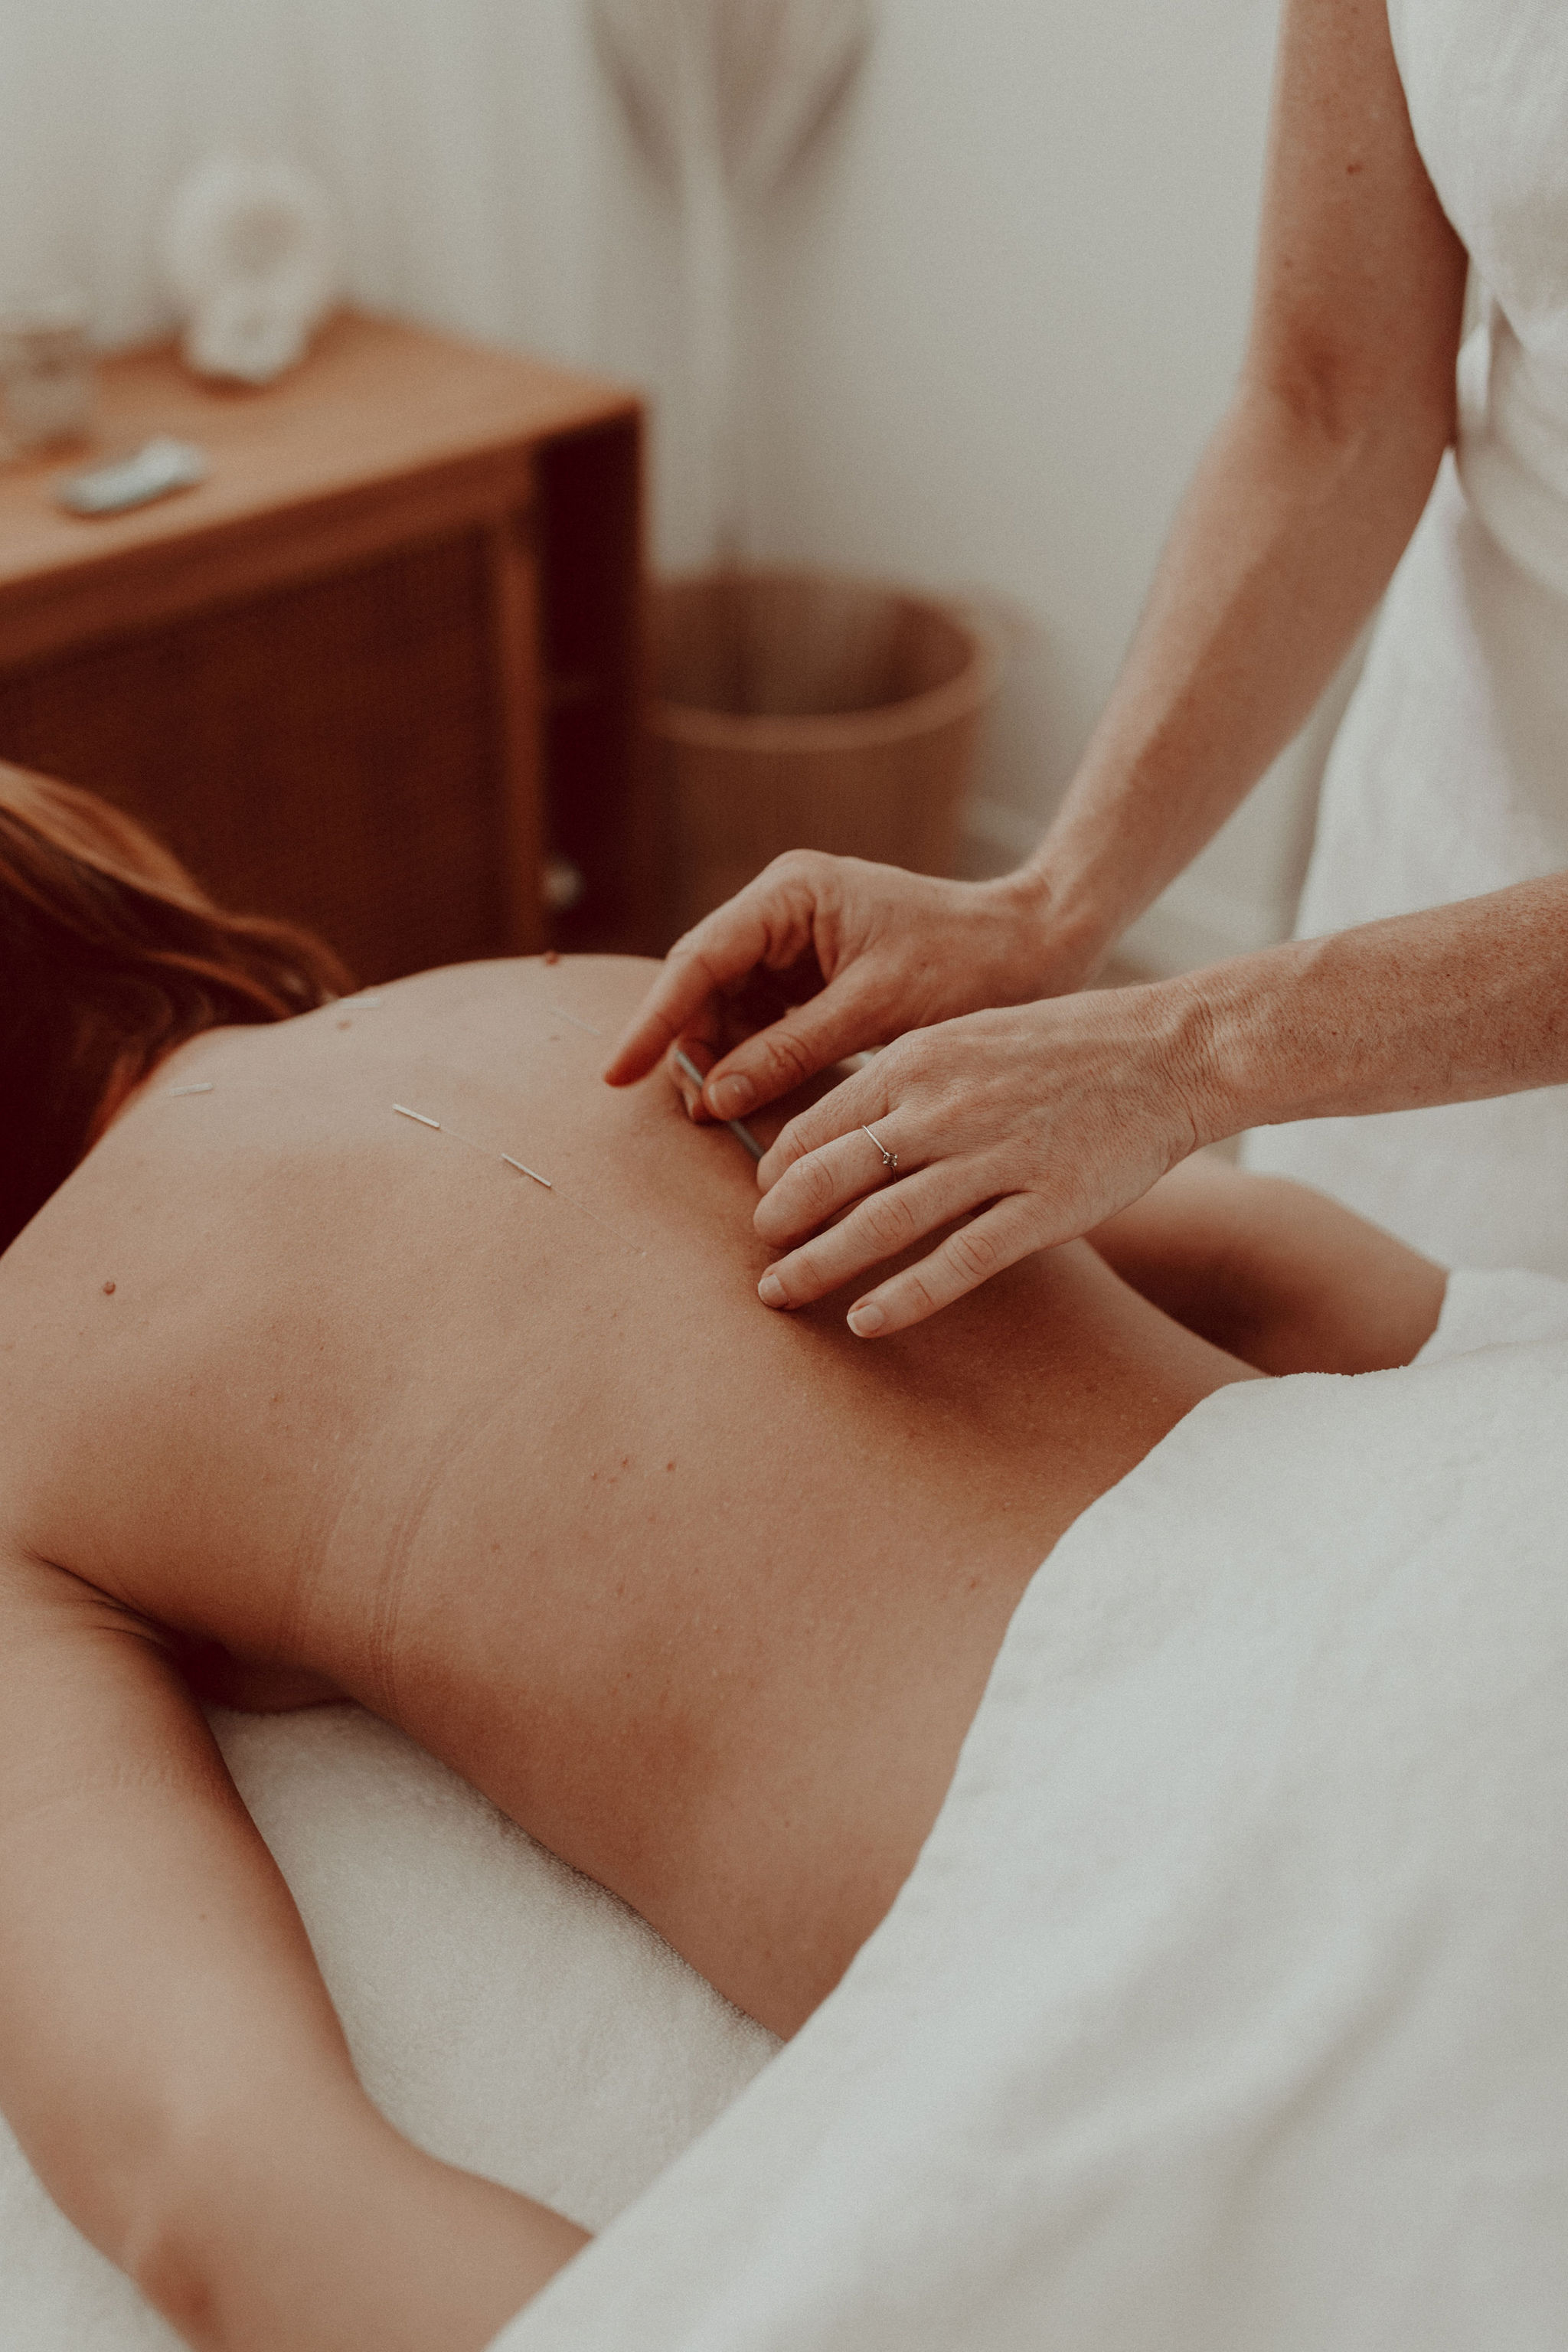 Eva Rose applying an acupuncture treatment to a client